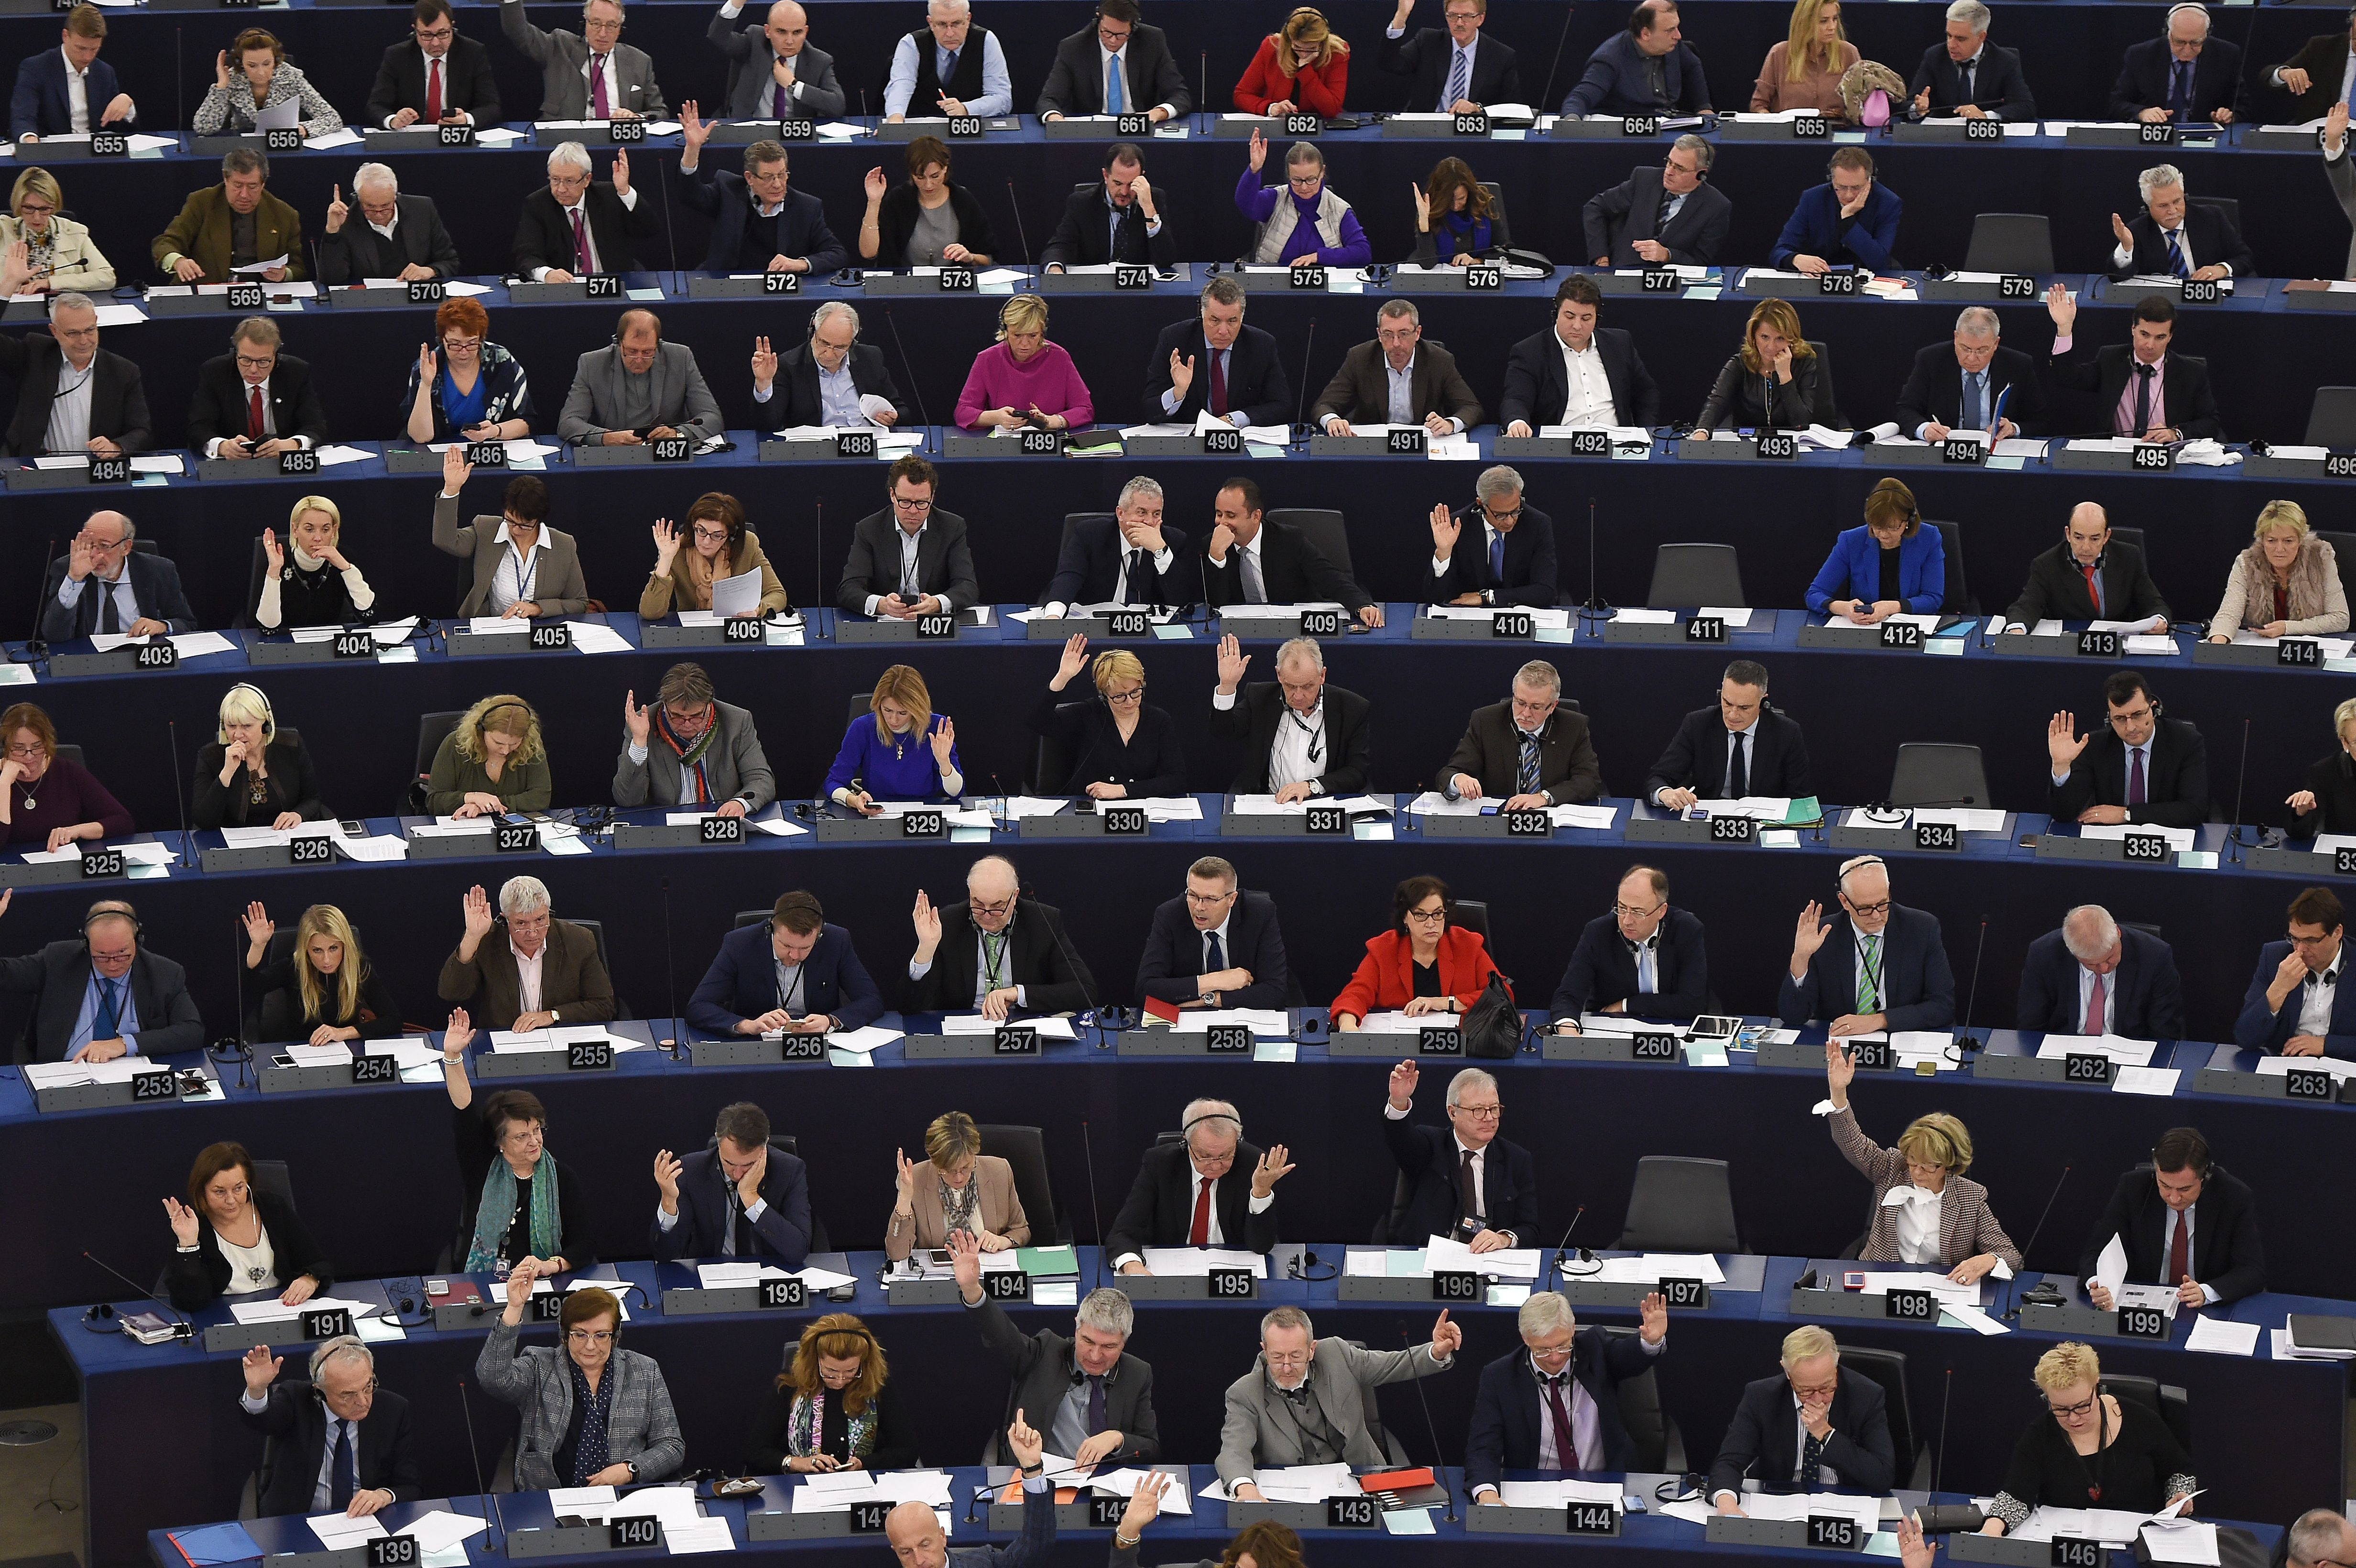 Members of the European Parliament take part in a voting session at the European Parliament.